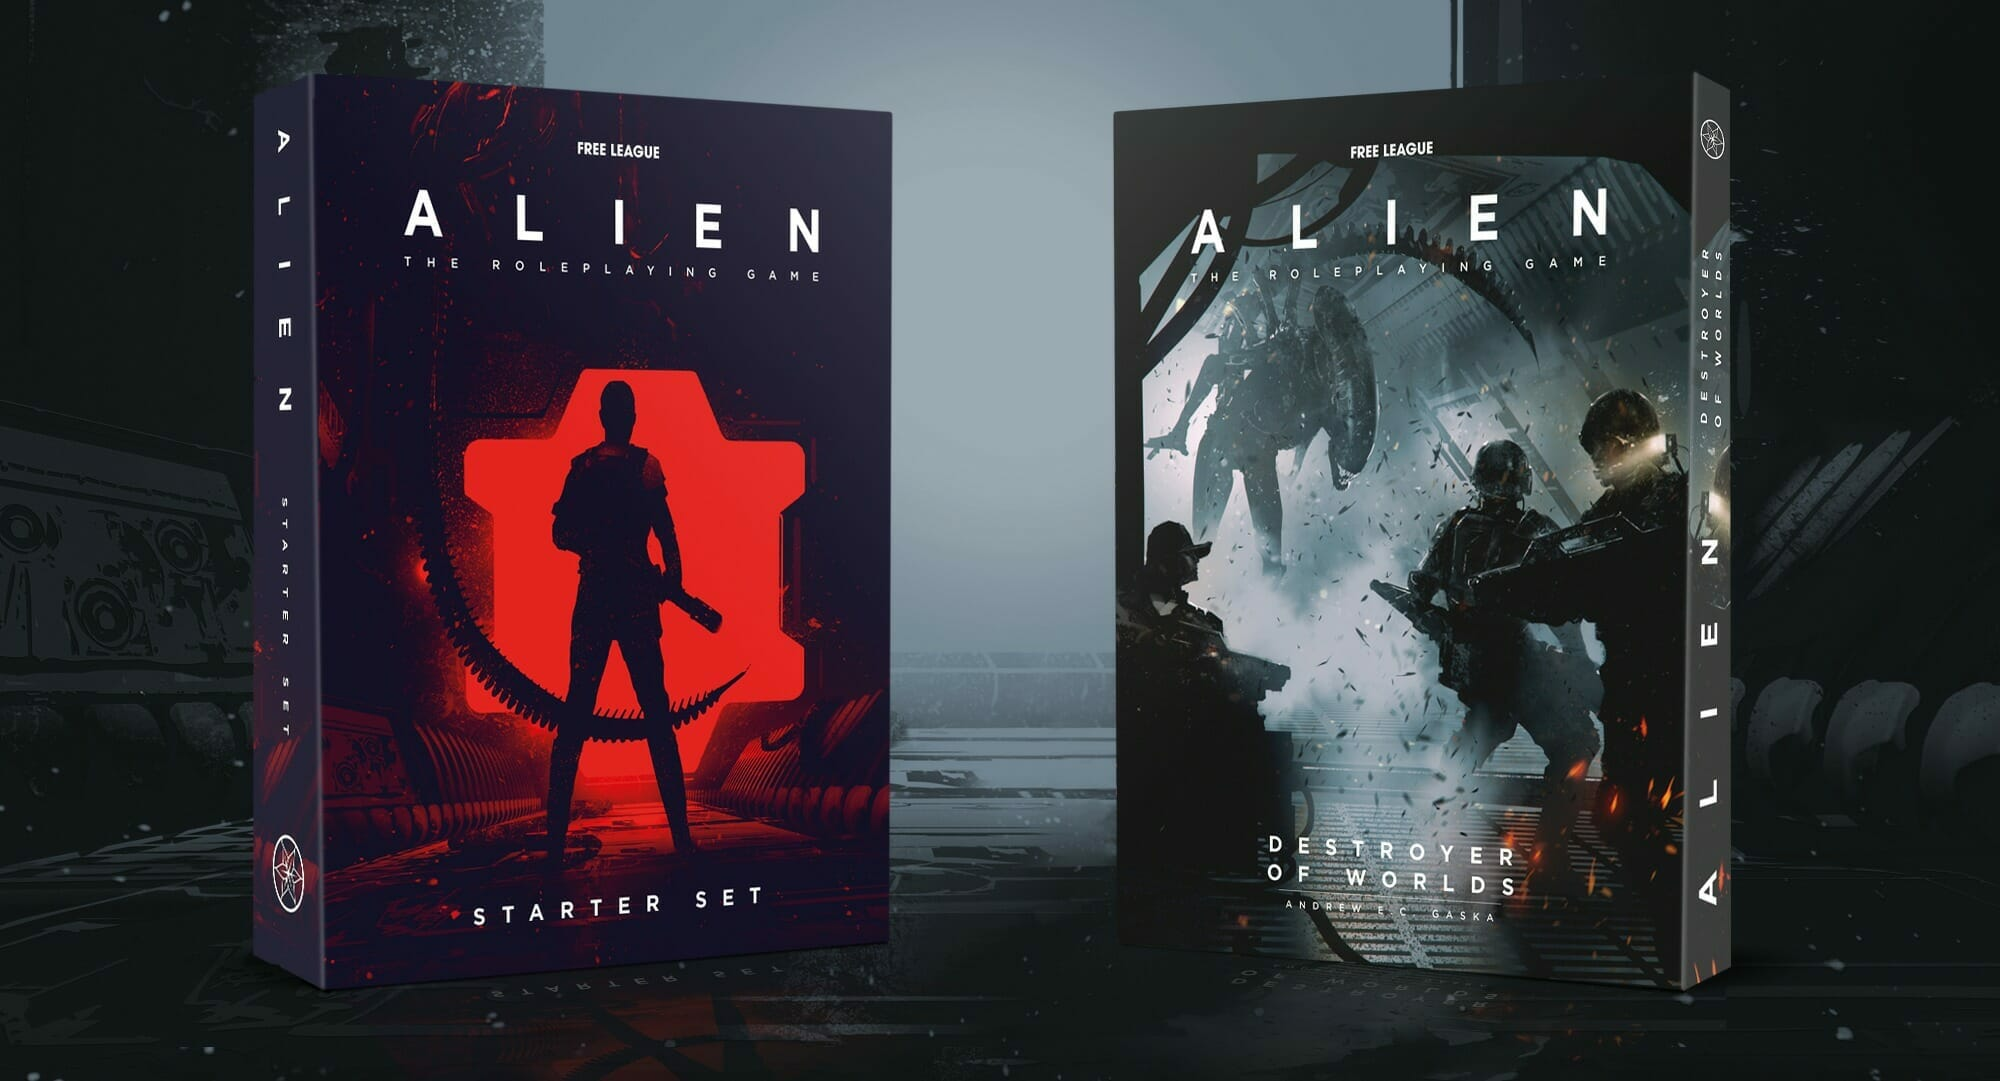 Alien RPG books from Free League Publishing